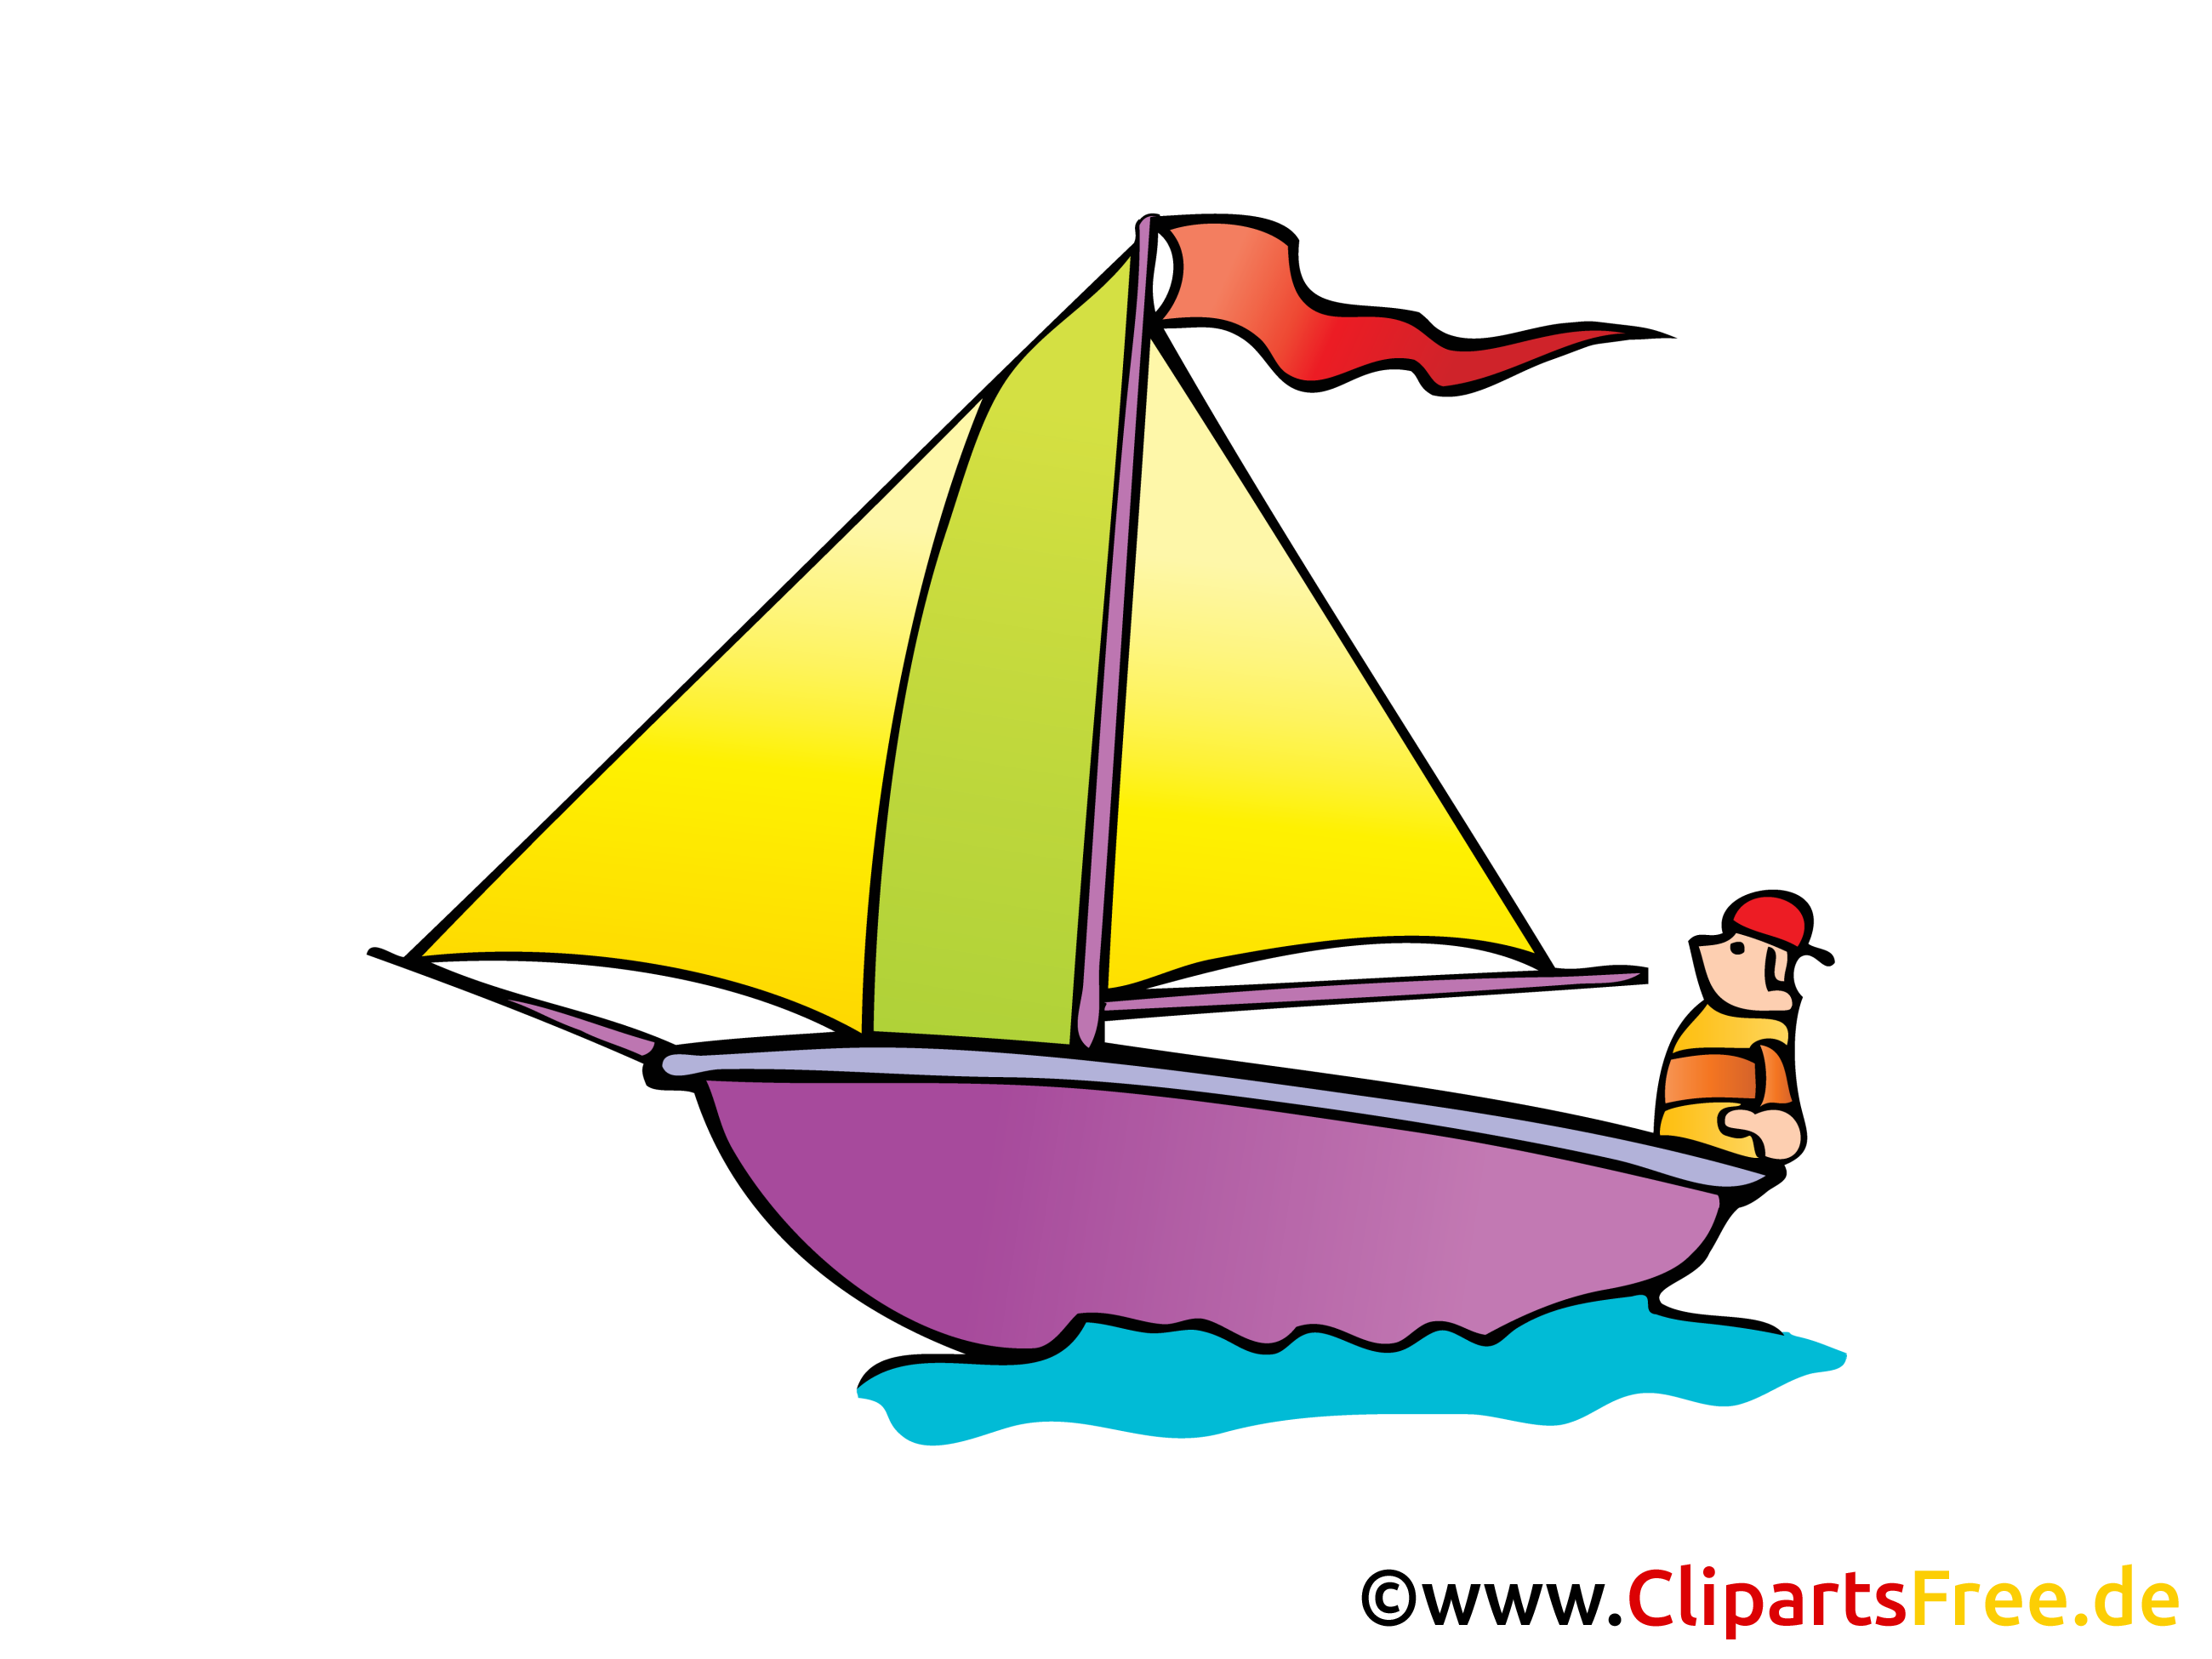 Segelschiff Bild, Clipart, Illustration, Comic, Cartoon gratis